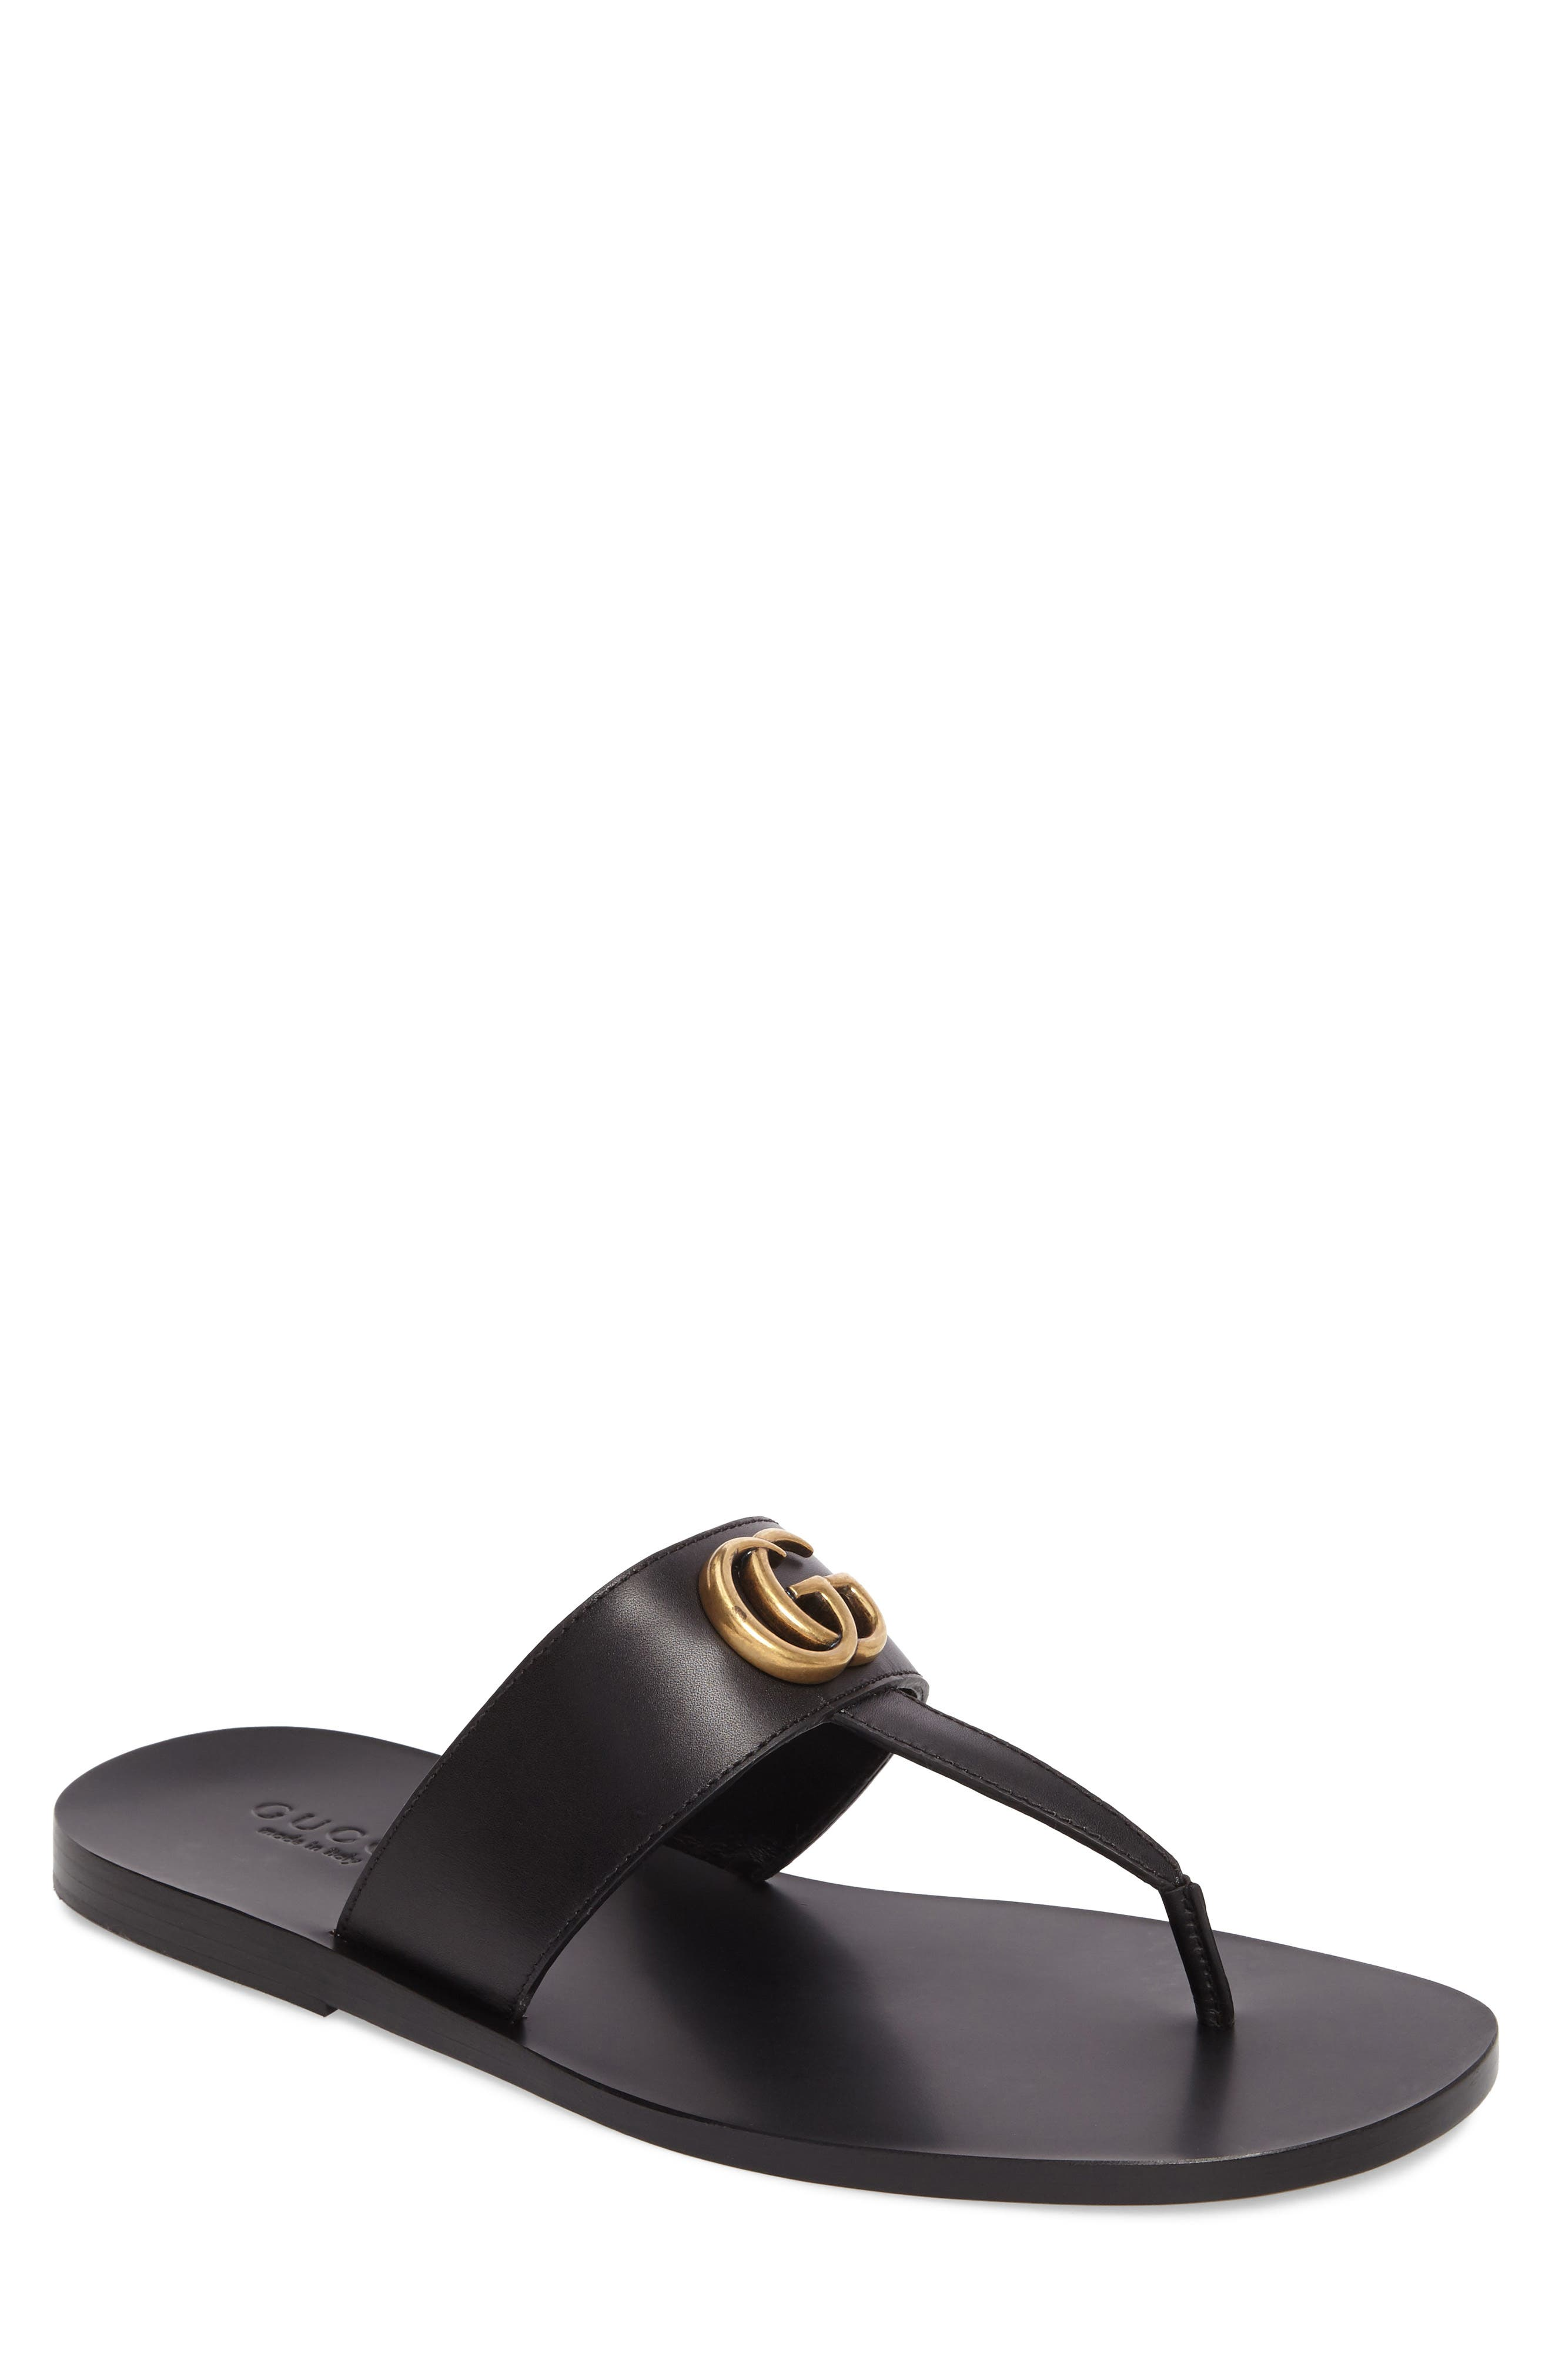 Marmont Double G Leather Thong Sandal,                             Main thumbnail 1, color,